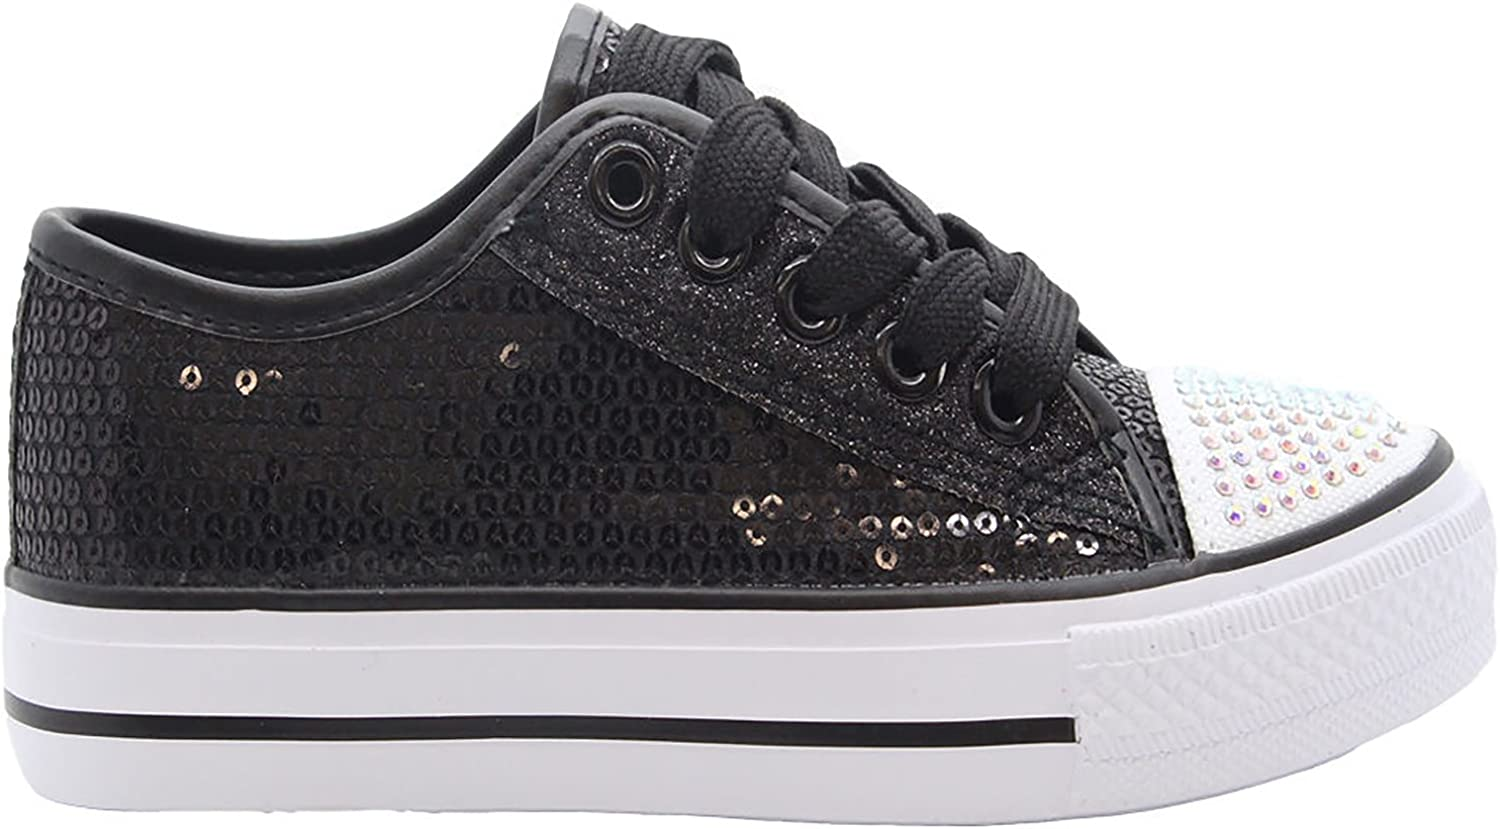 MyShoeStore Girls Diamante Canvas Shoes Childrens Kids Toddlers Summer Sequins Pumps Casual Infants Trainers Flat Low Top Lace Up Lightweight Plimsolls Sneakers Skaters Sizes 5-3